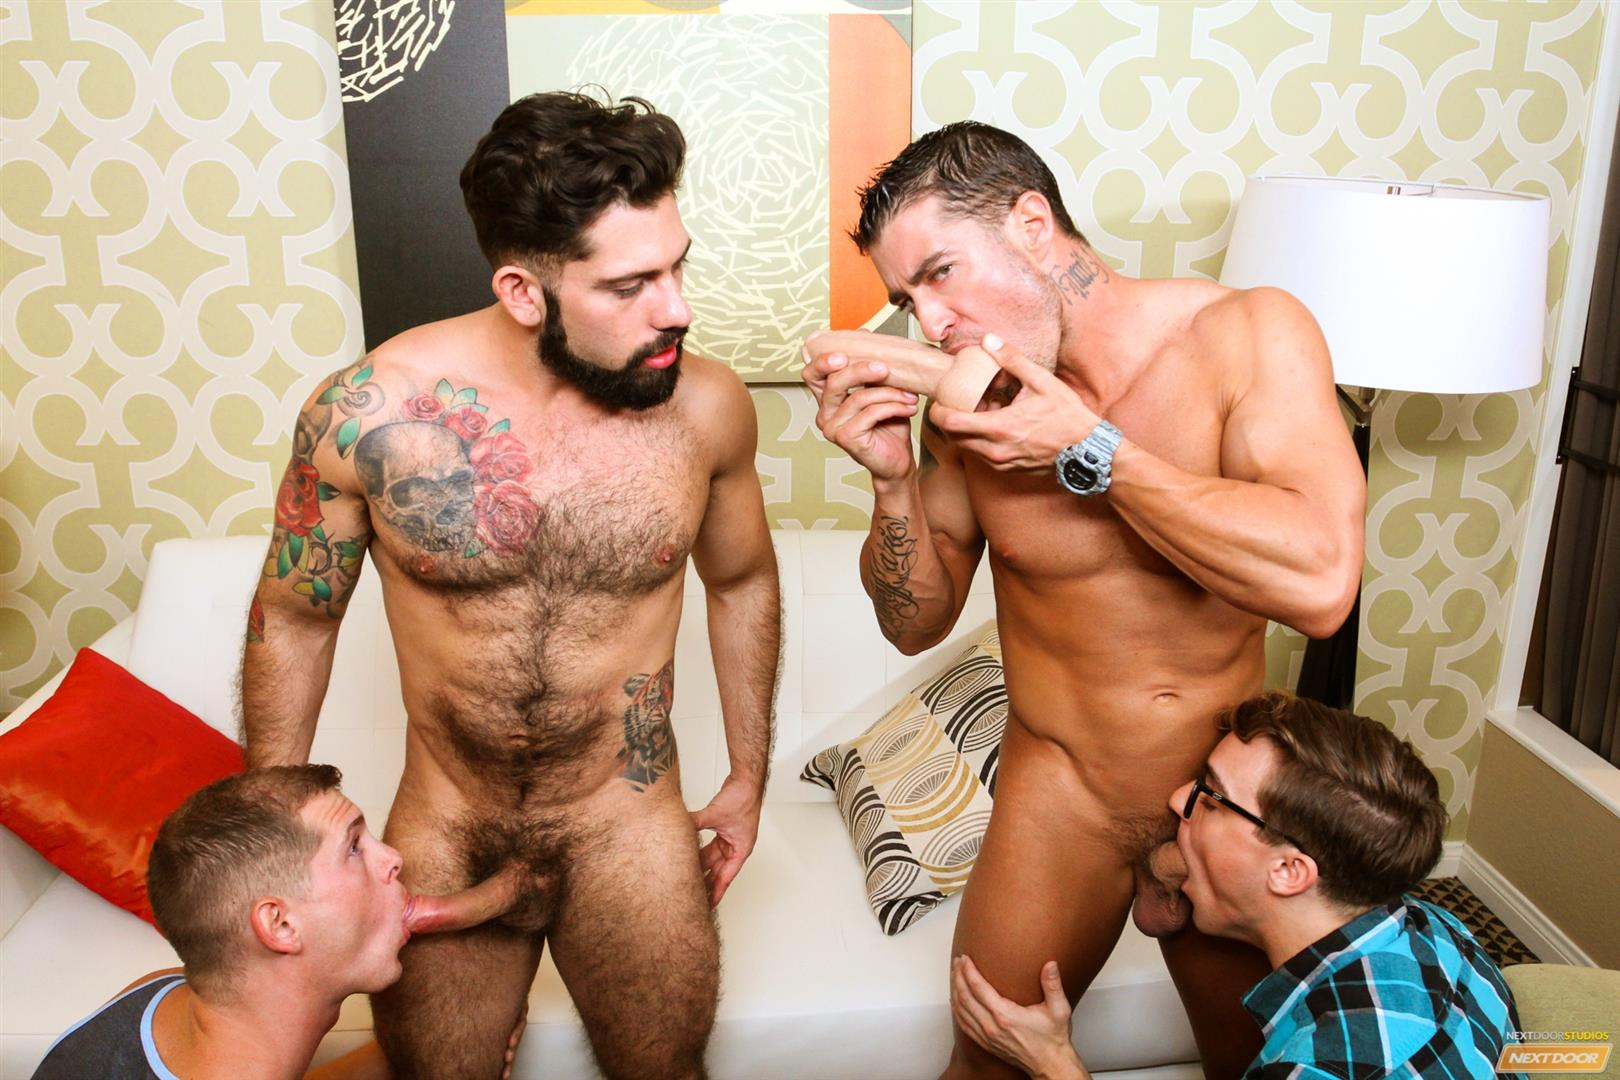 Cody-Cummings-and-Tyler-Morgan-and-Alessandro-Del-Torro-Cock-Sucking-Lessons-Amateur-Gay-Porn-13 Cody Cummings Gives The Boys Cock Sucking Lessons